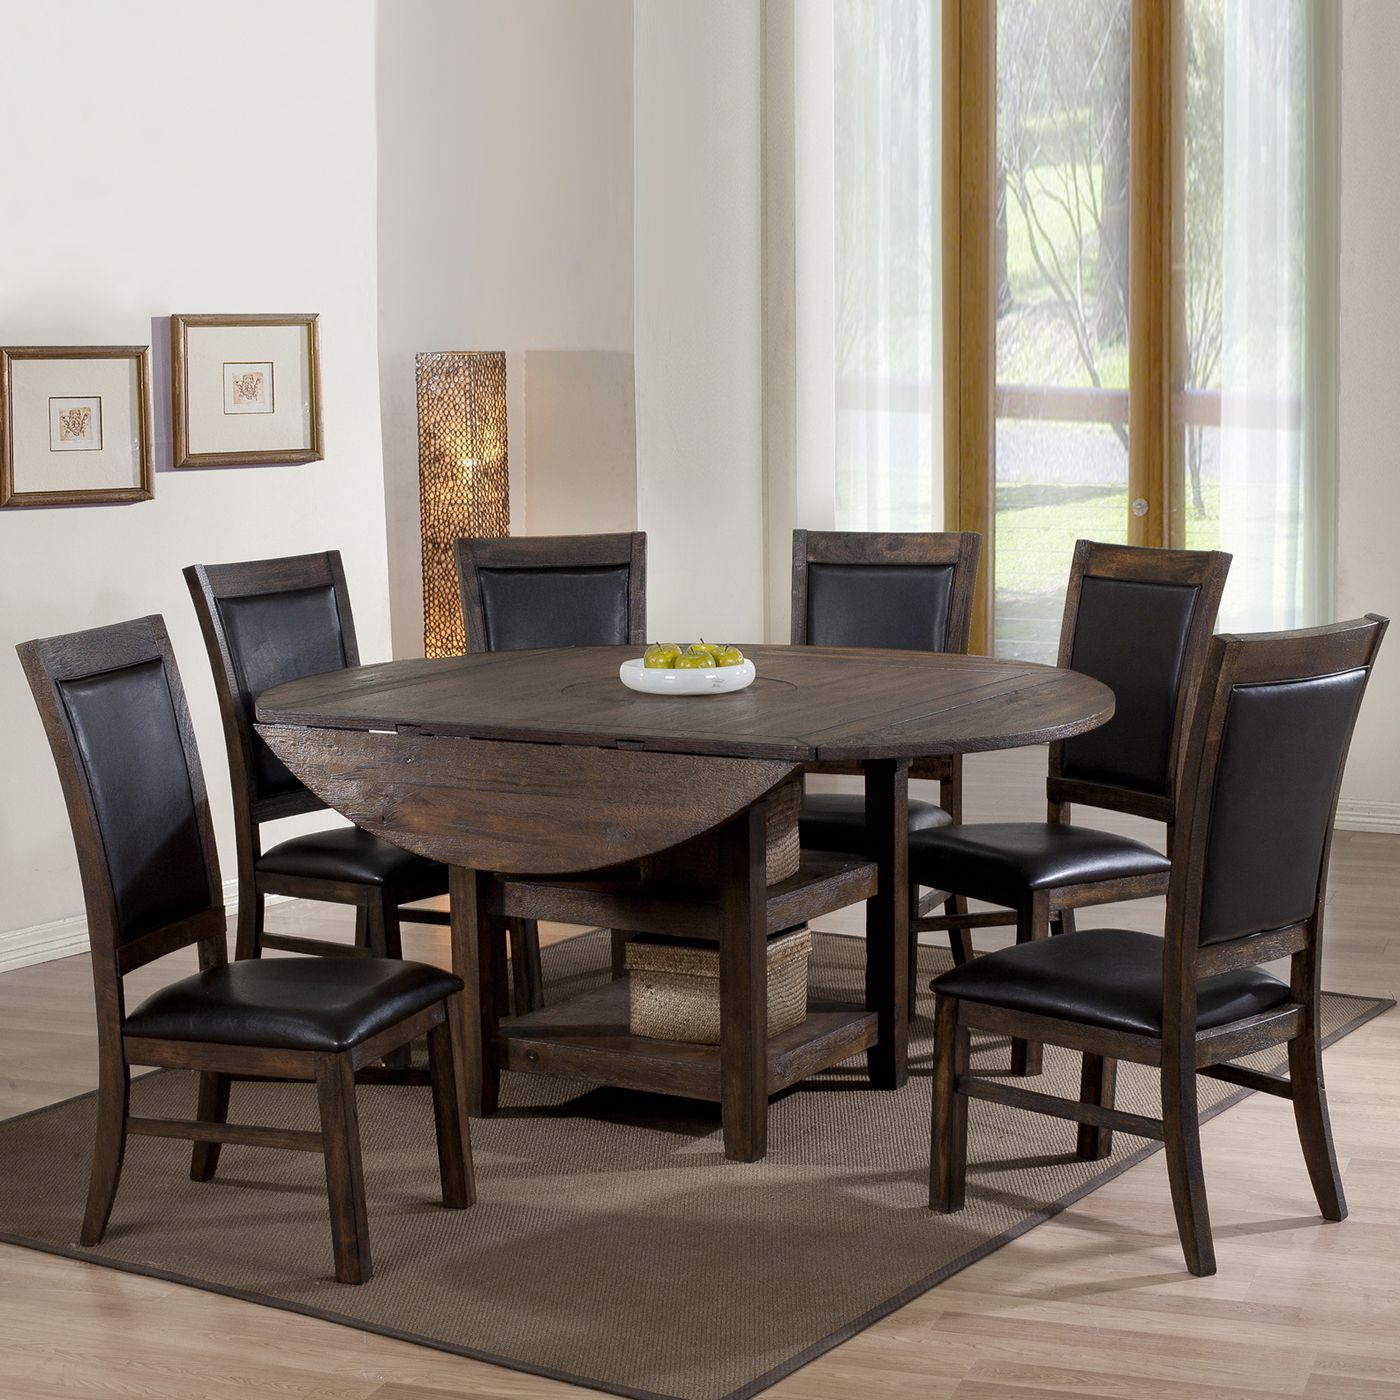 Legends Furniture Zi S8090 Sonoma Convertible Round Table Atg